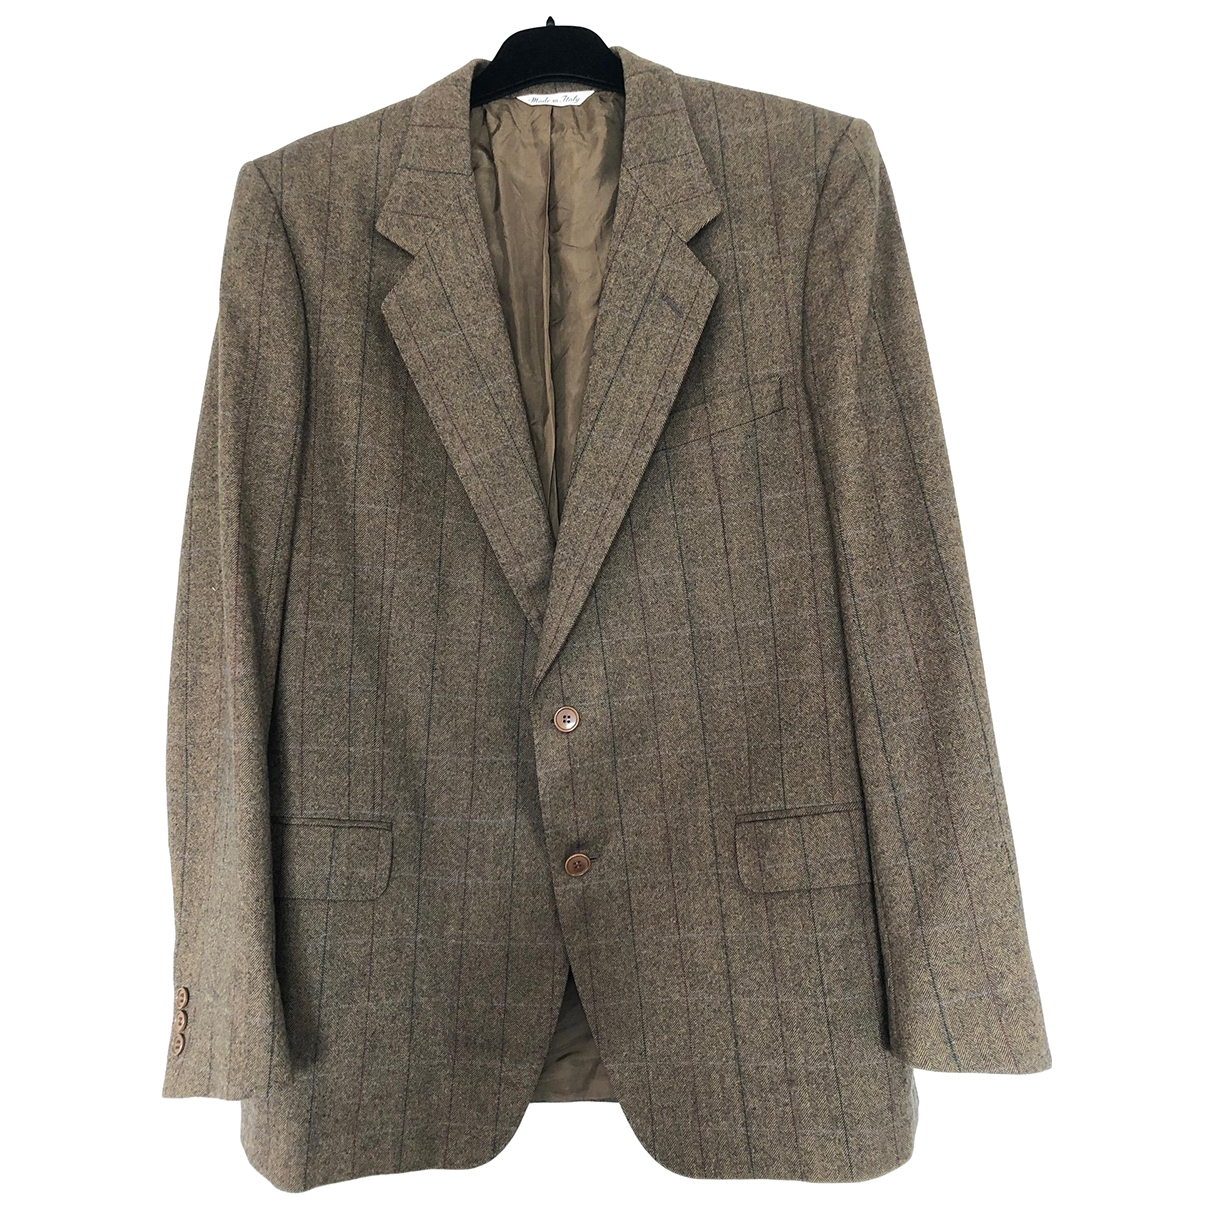 Yves Saint Laurent - Vestes.Blousons   pour homme en tweed - marron